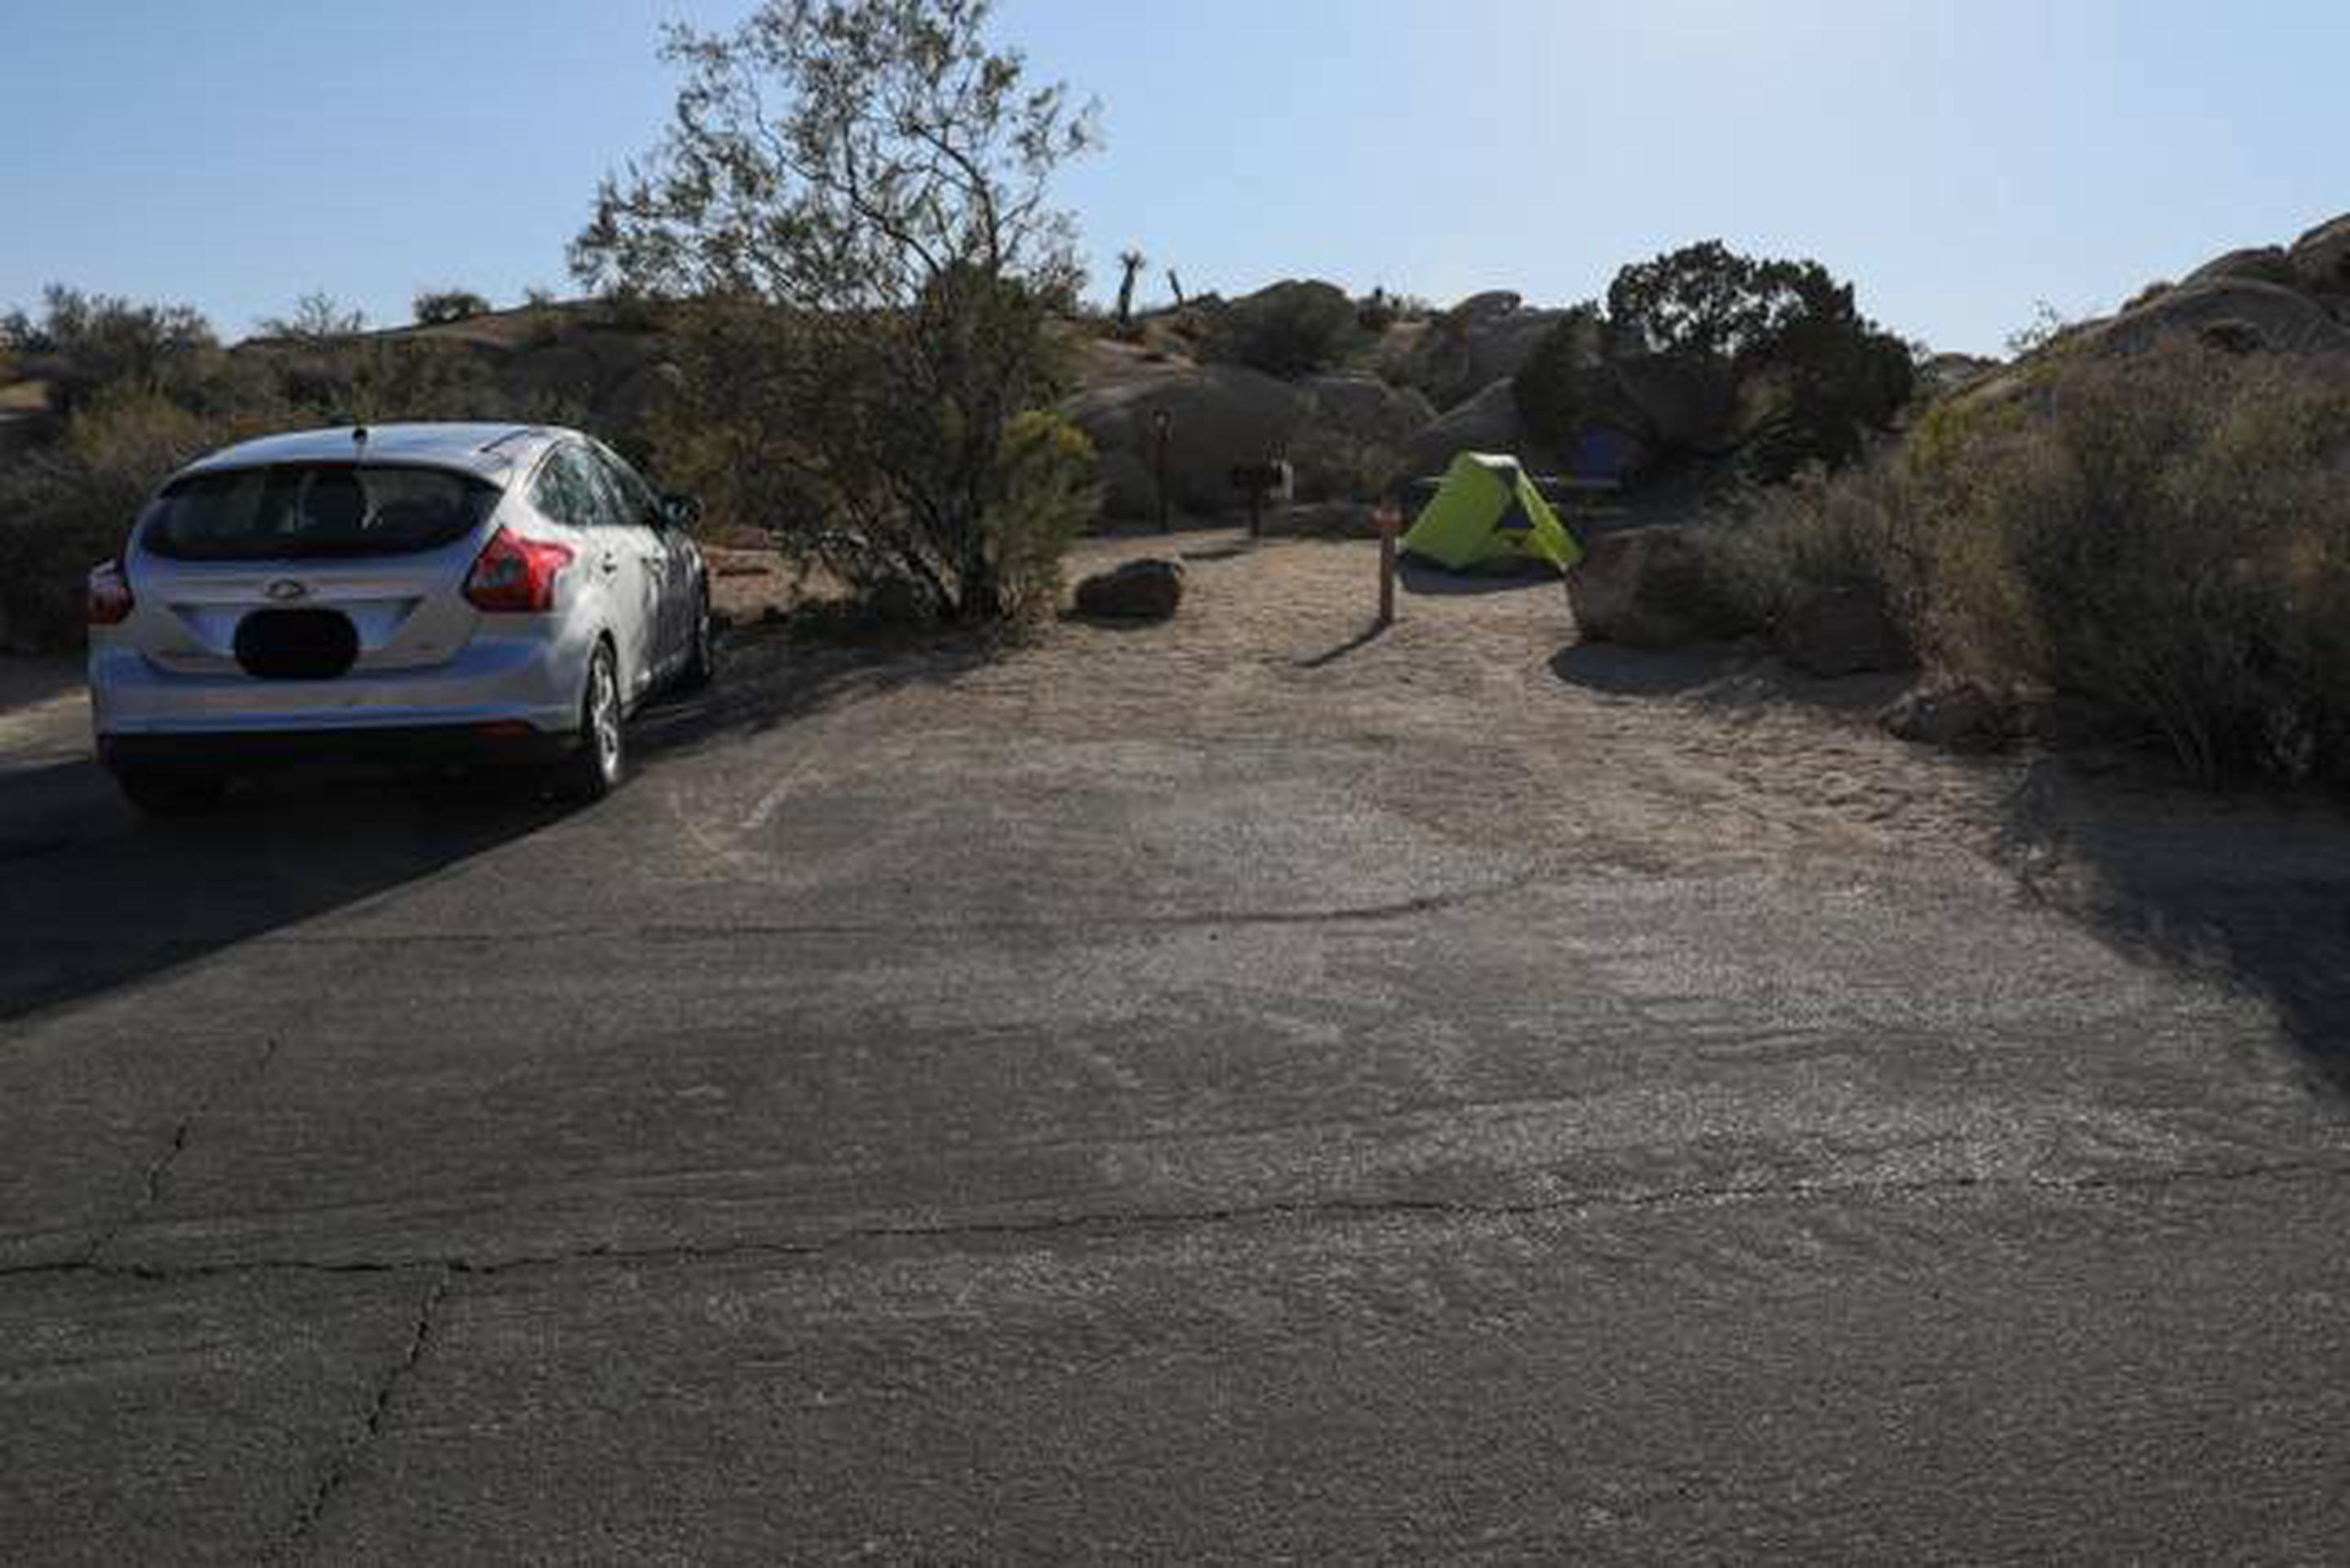 Jumbo Rocks site 27Parking space for campsite